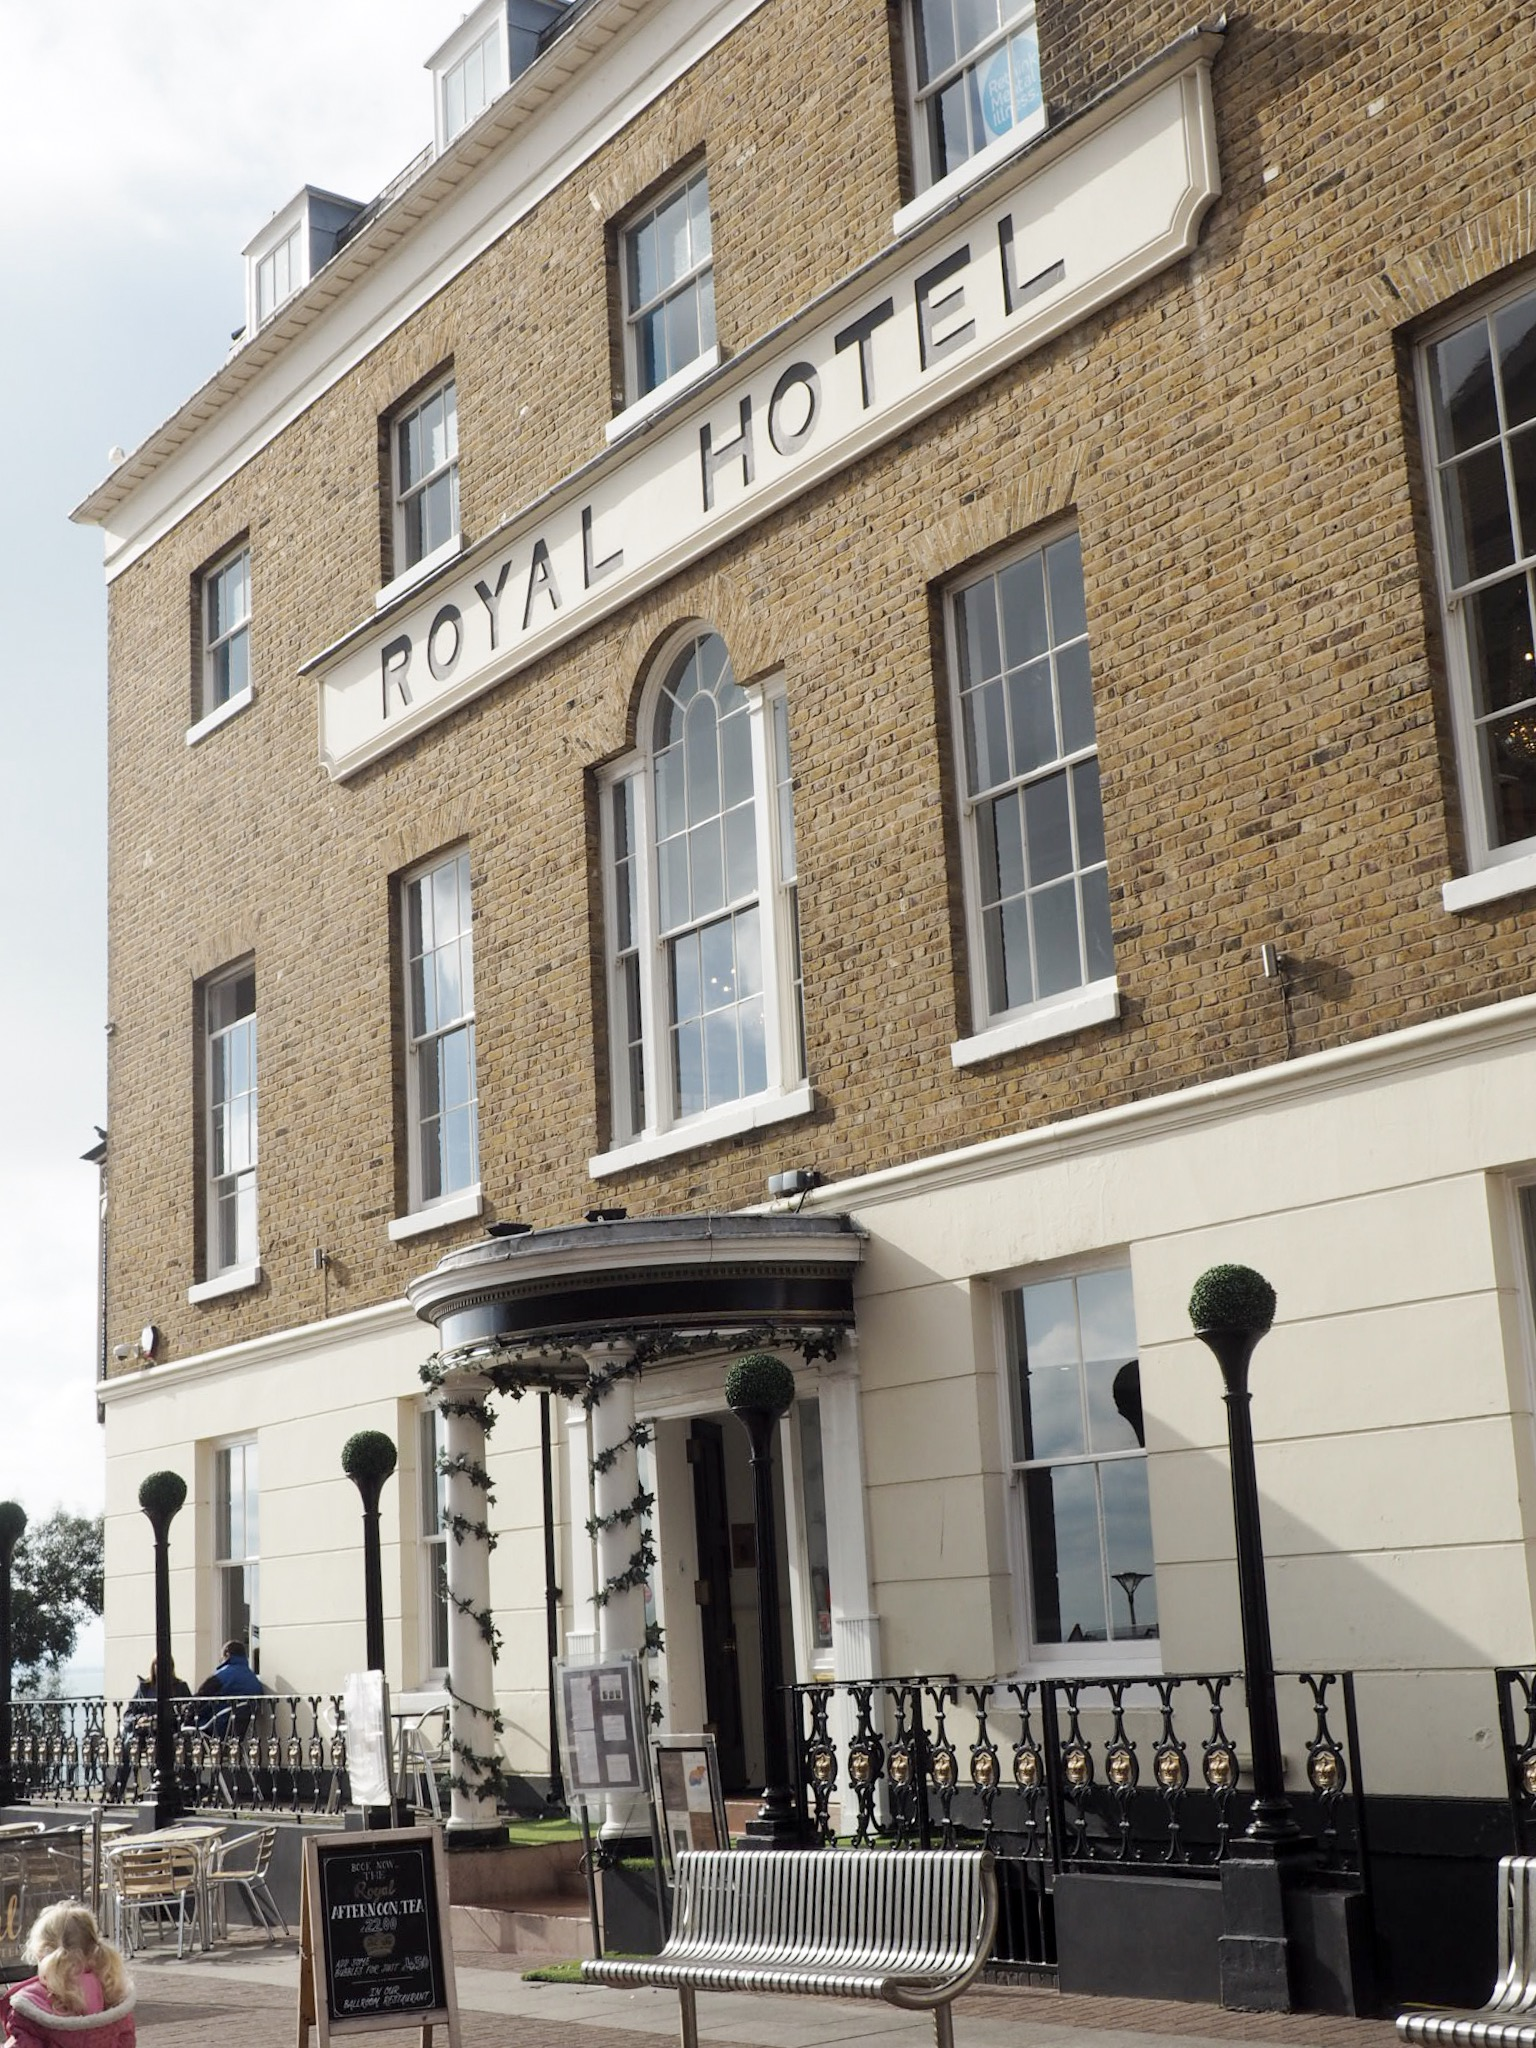 Royal Hotel Southend